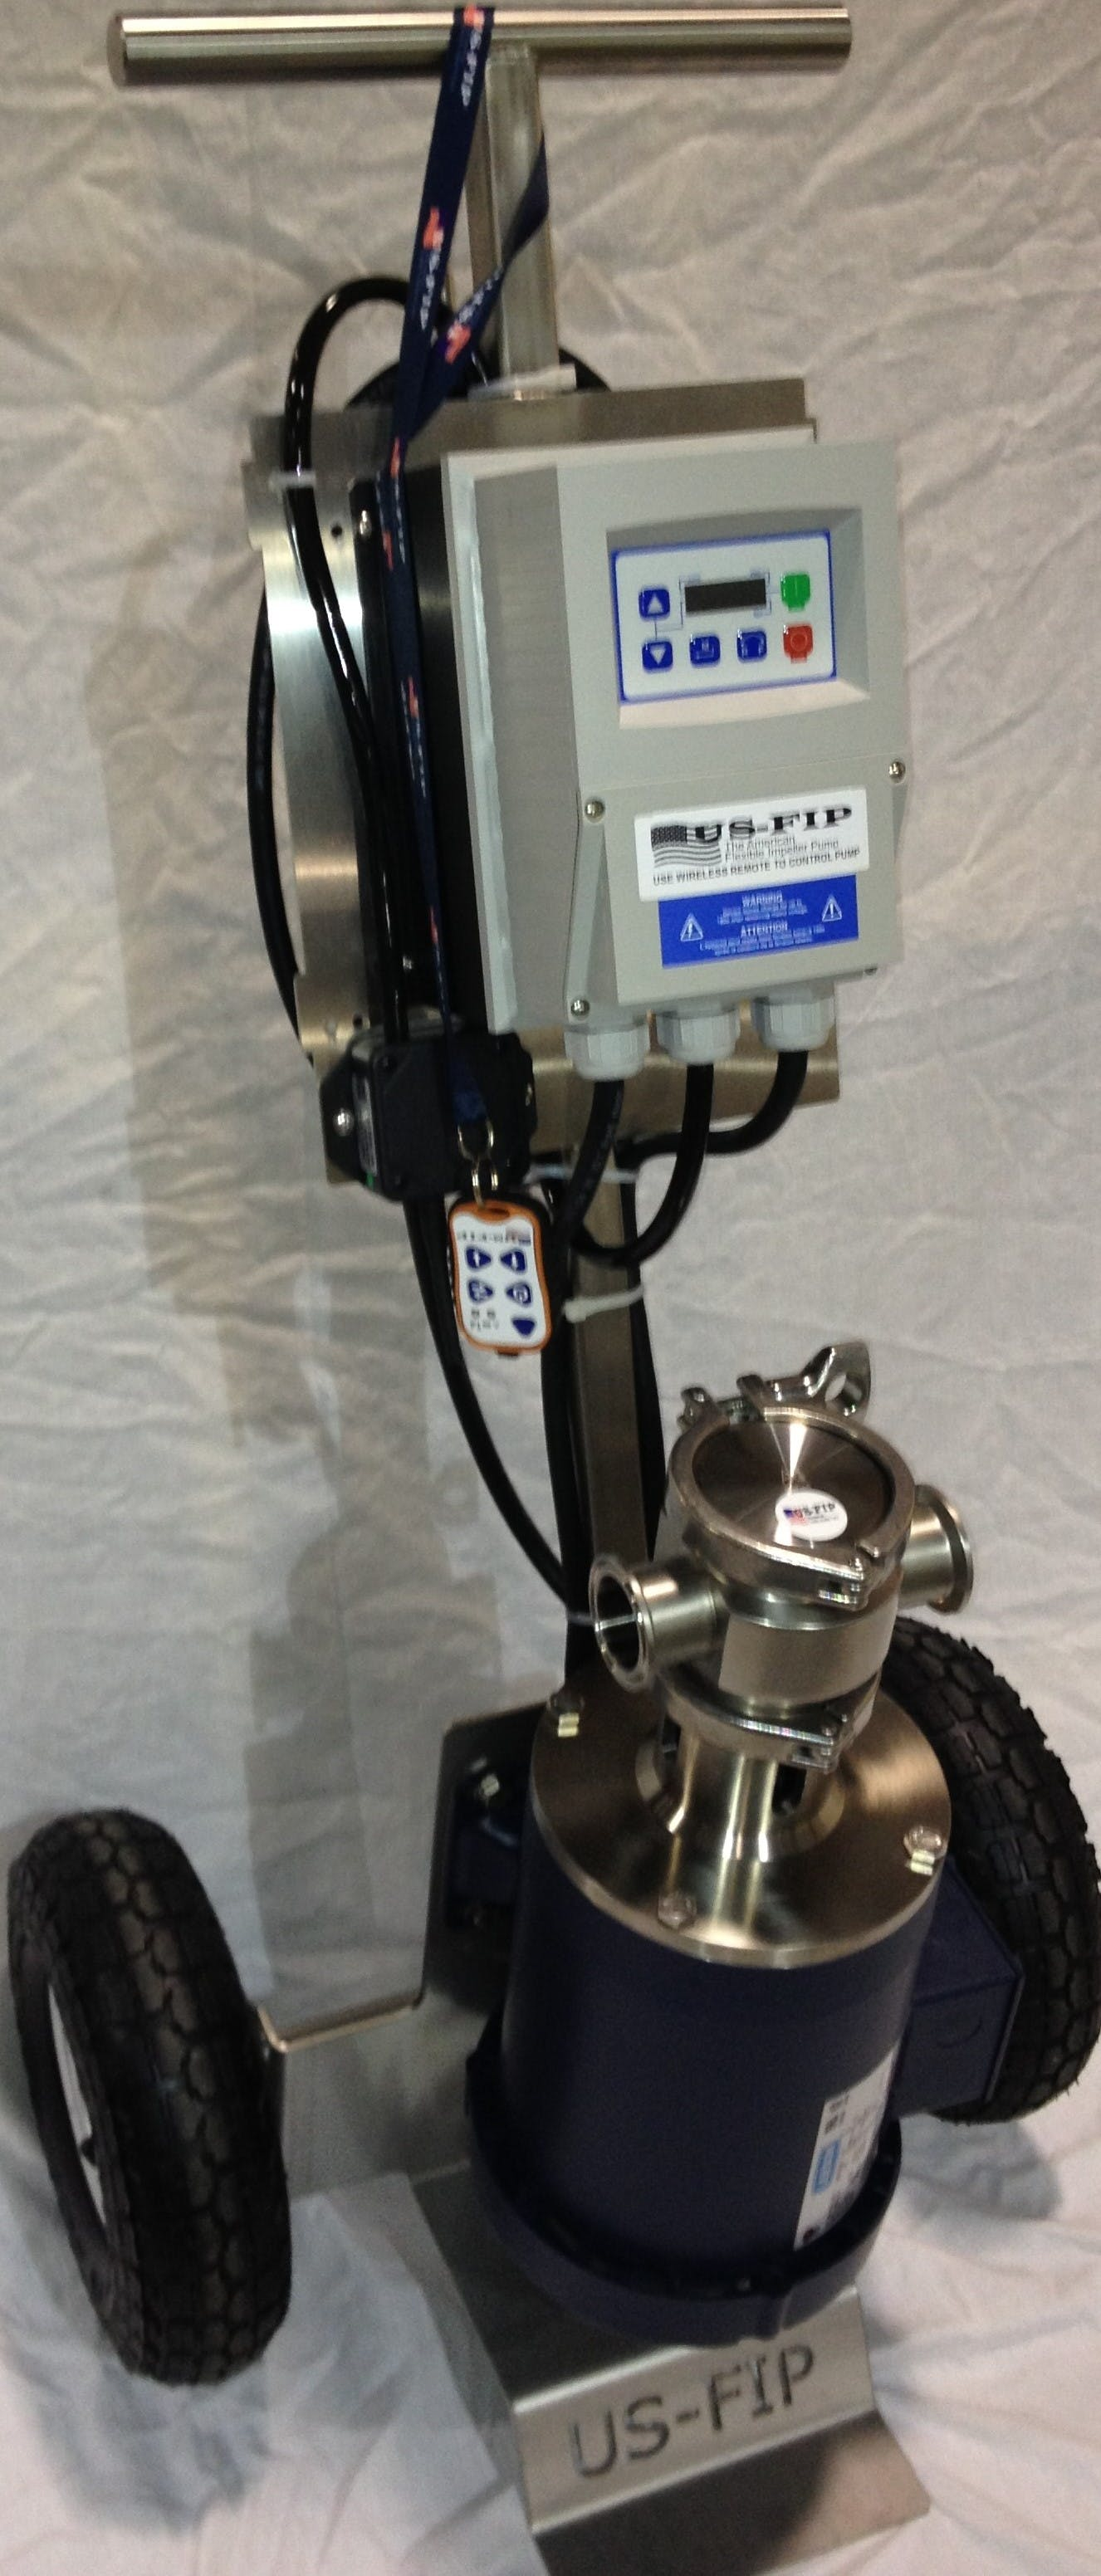 "US-FIP model 15130 (1.5"" 1.5"") Wine pump sold by McFinn Technologies, LLC"